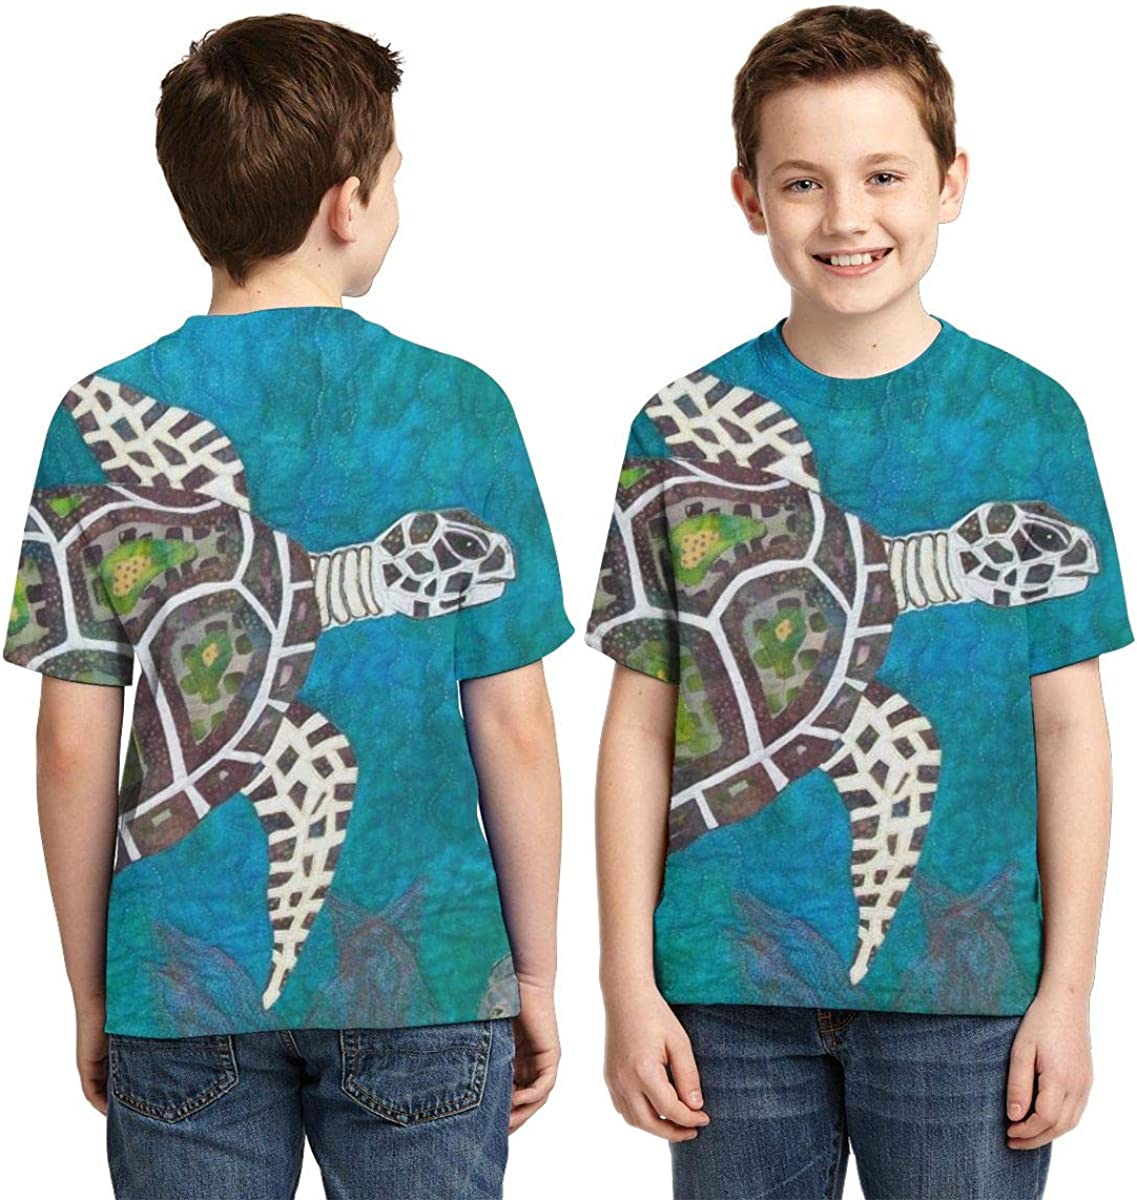 Boy Youth Children Novelty T Shirt Short Sleeve Tee Sea Turtle